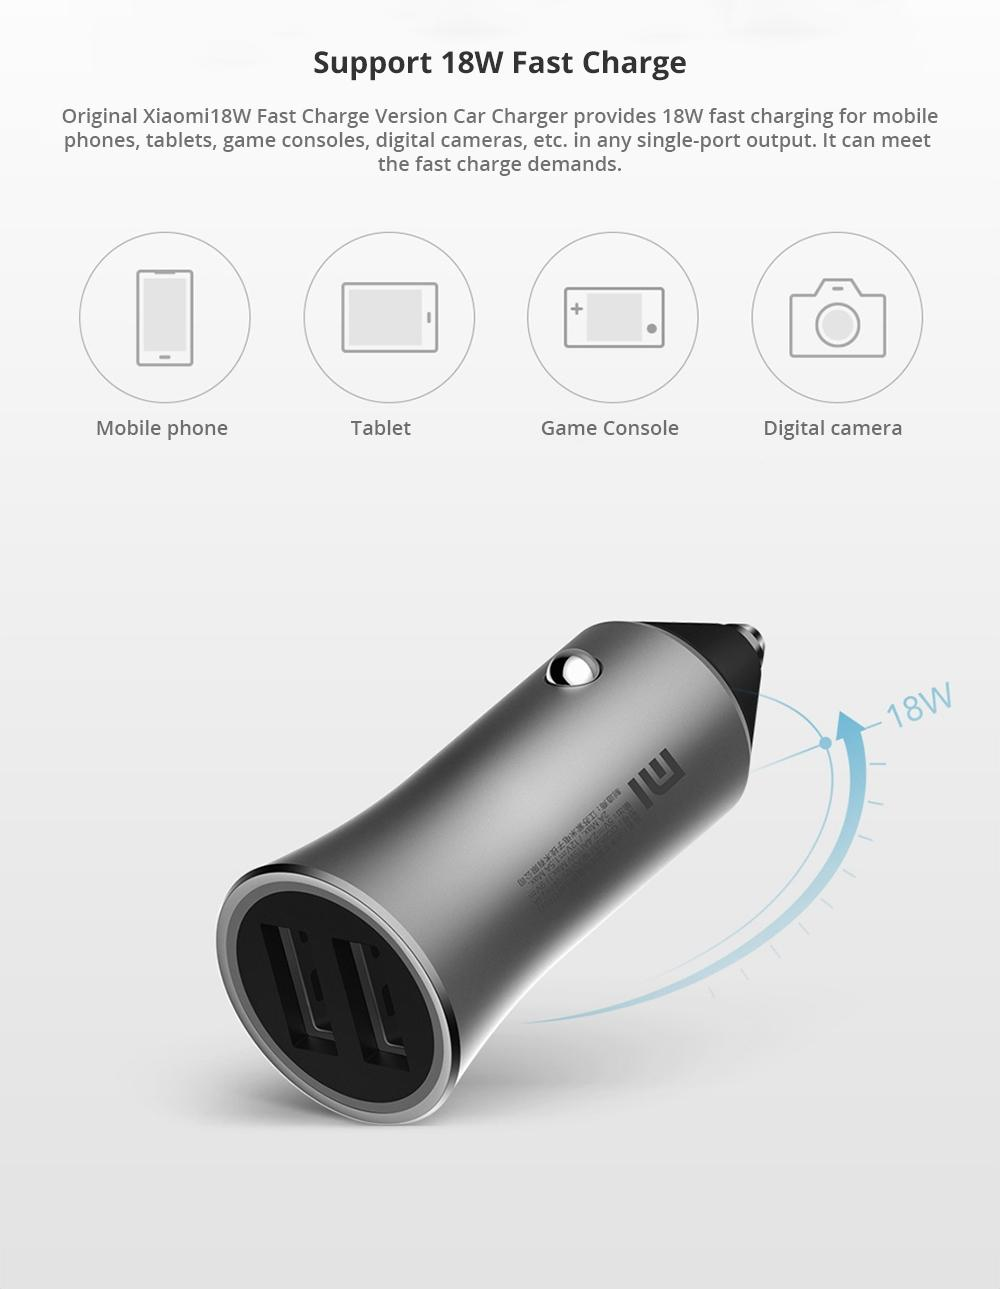 8W fast charging for mobile phones, tablets, game consoles, digital cameras